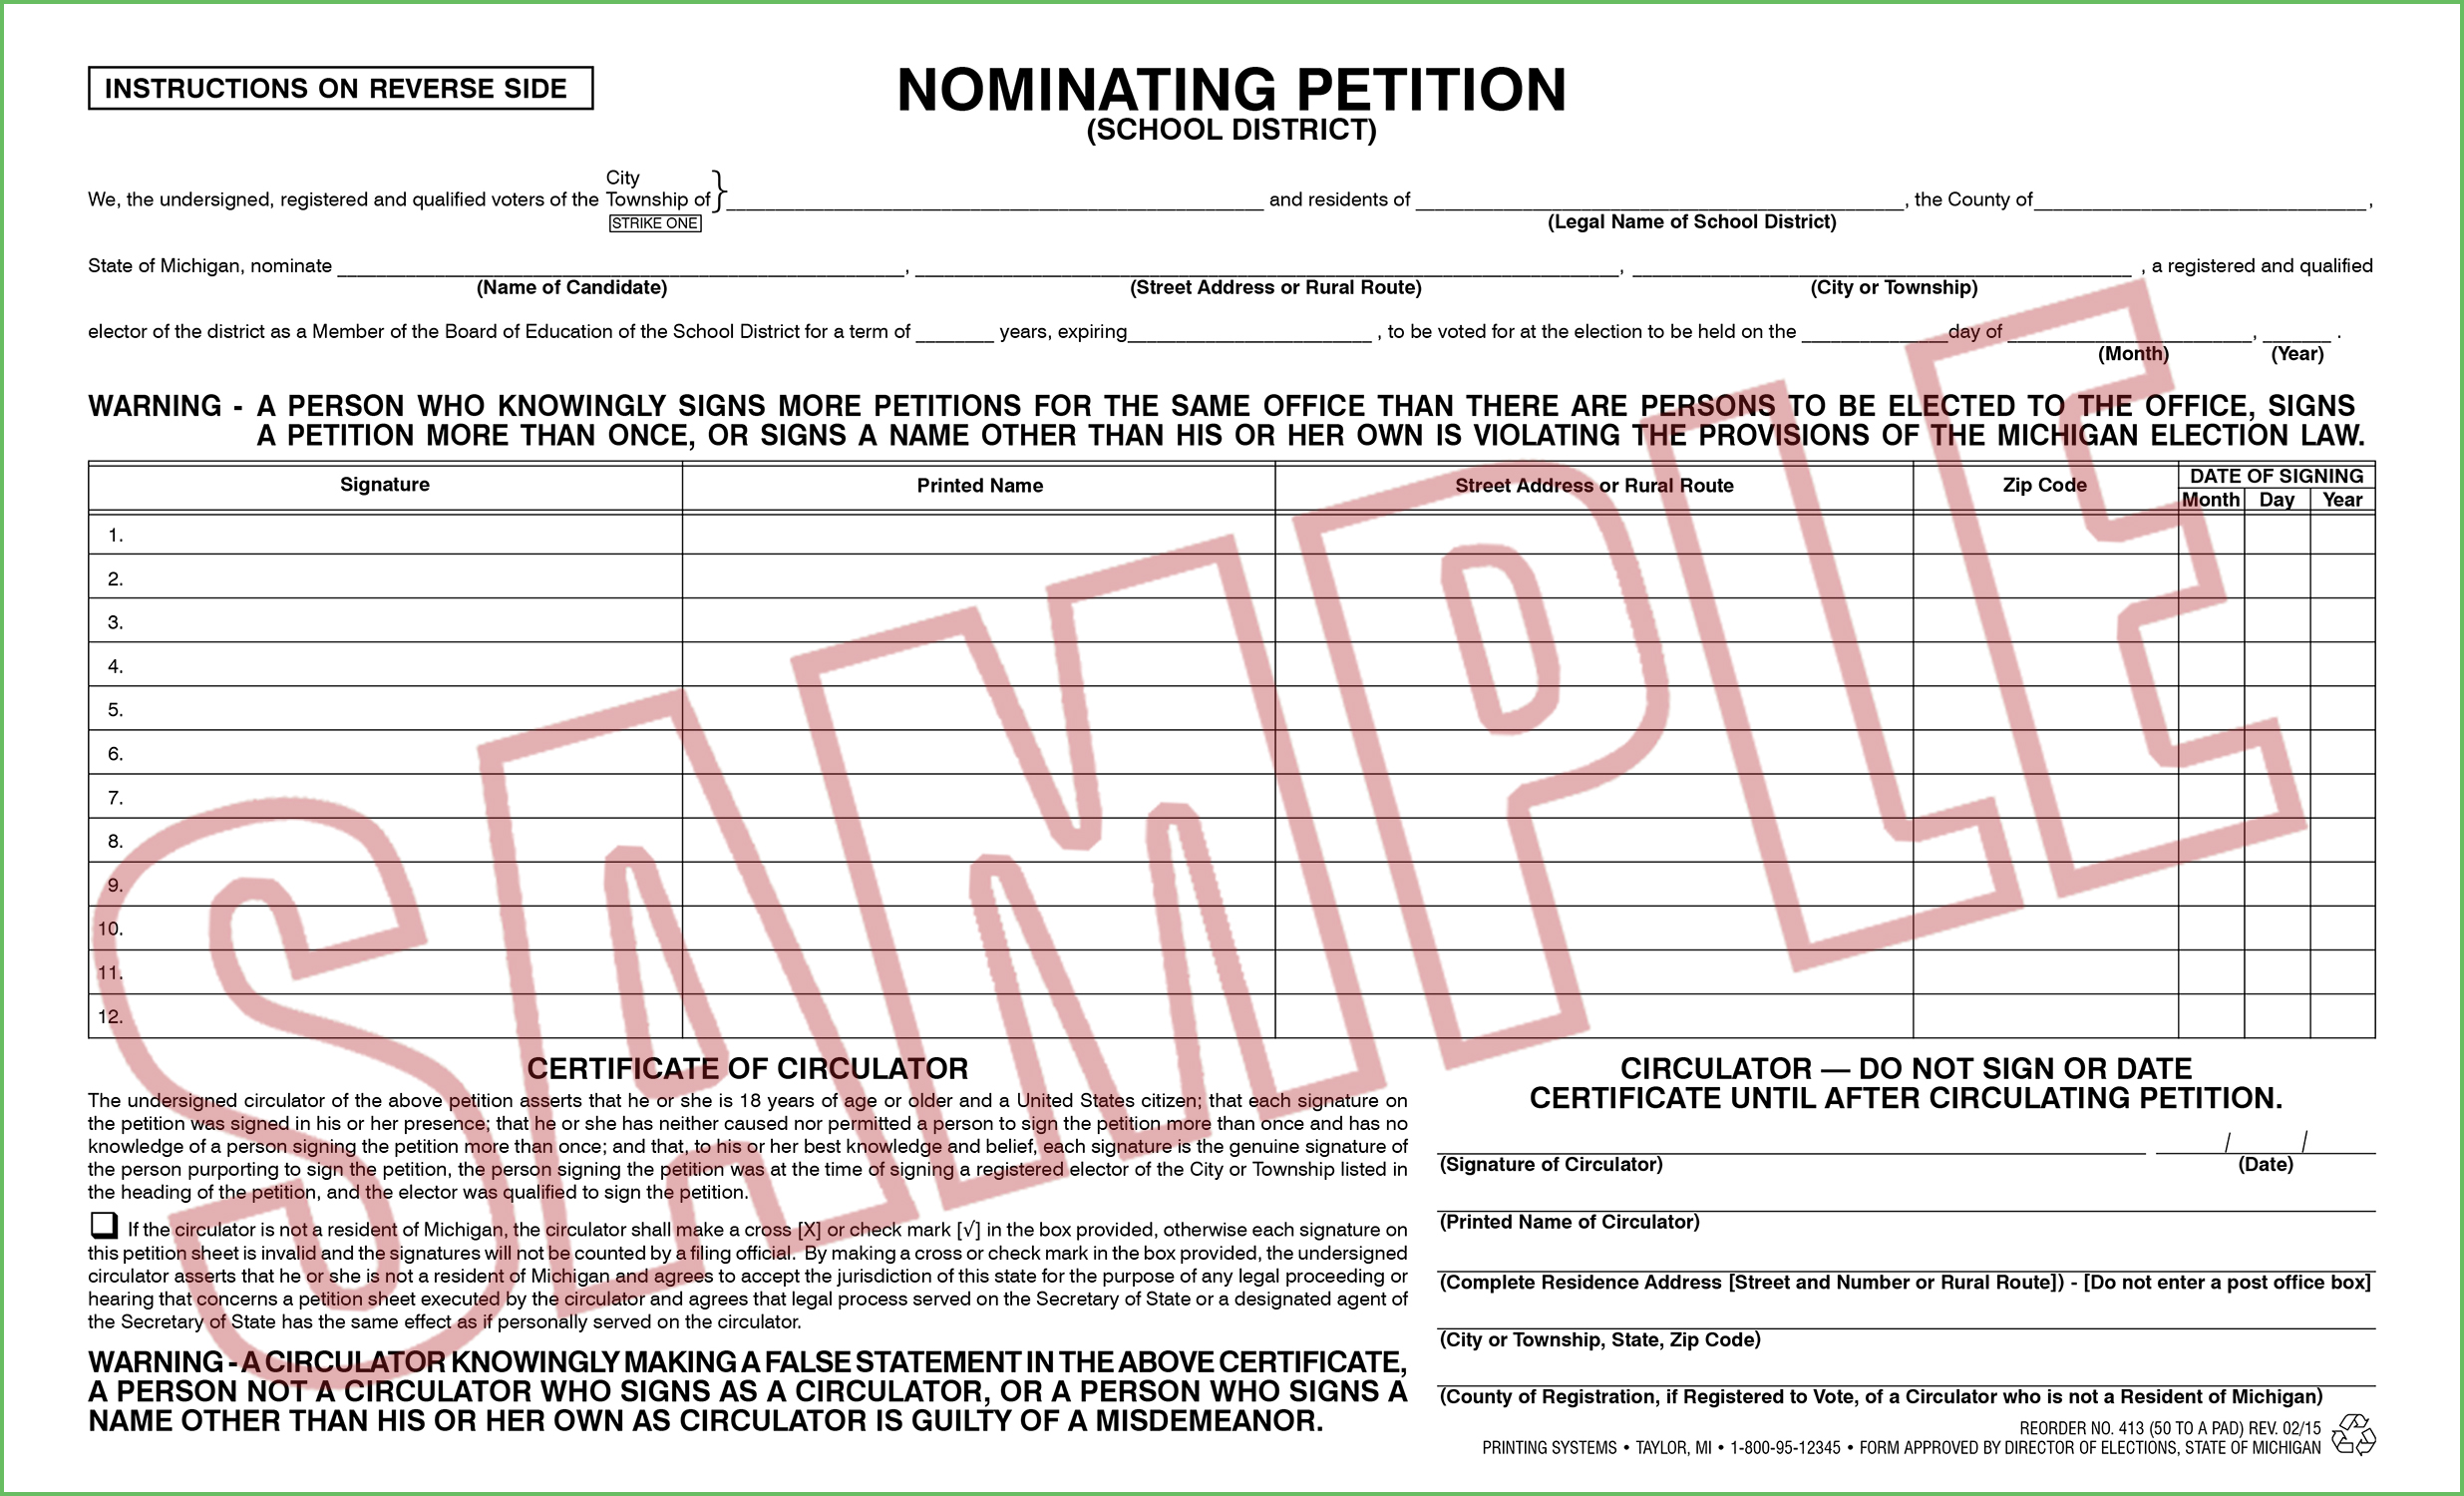 413 Nominating Petition (School District) (50 per pad) Rev. 02/15